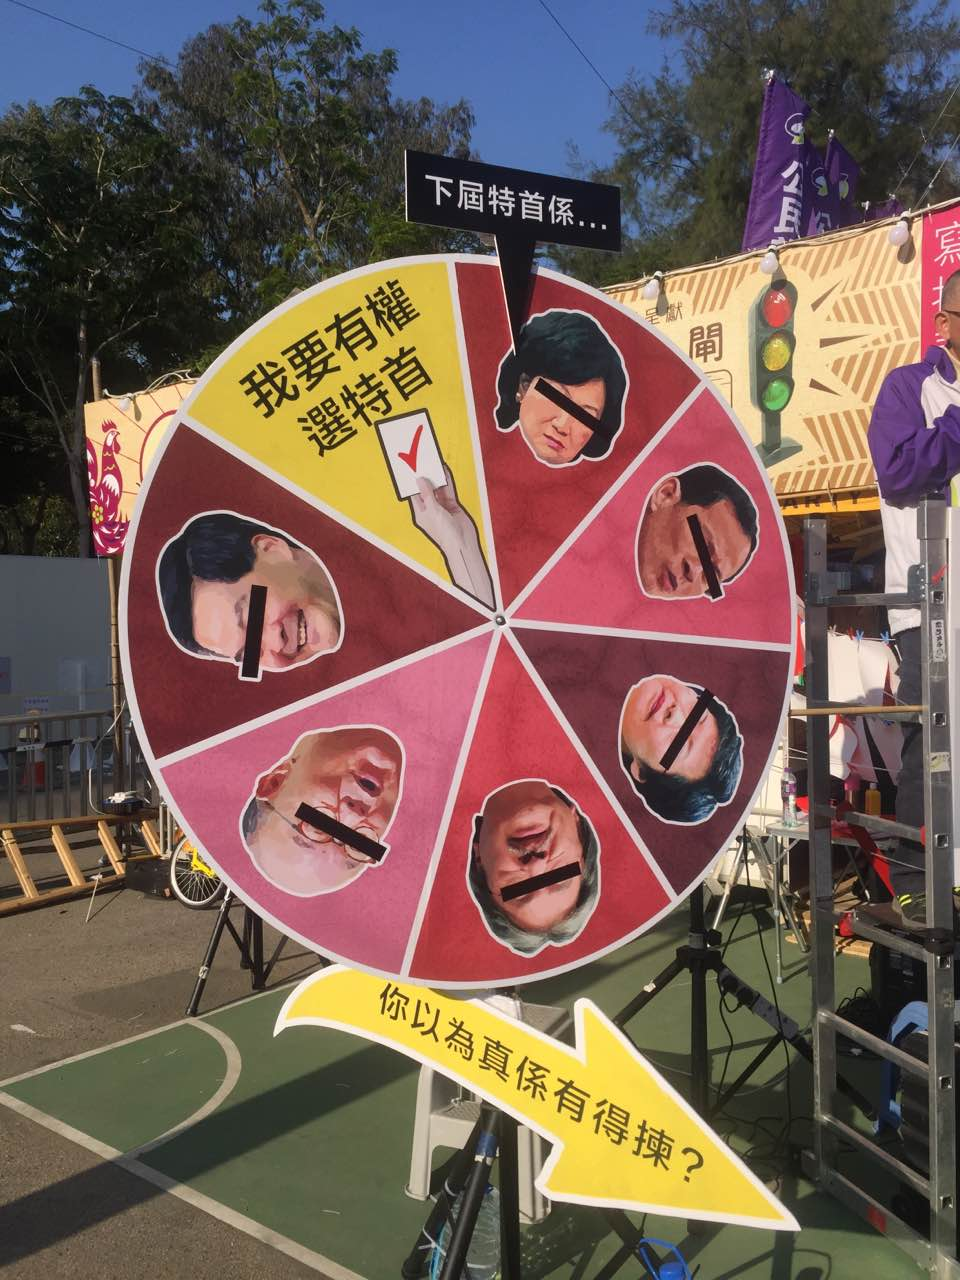 The lucky wheel by pro-democratic group Civic Party.